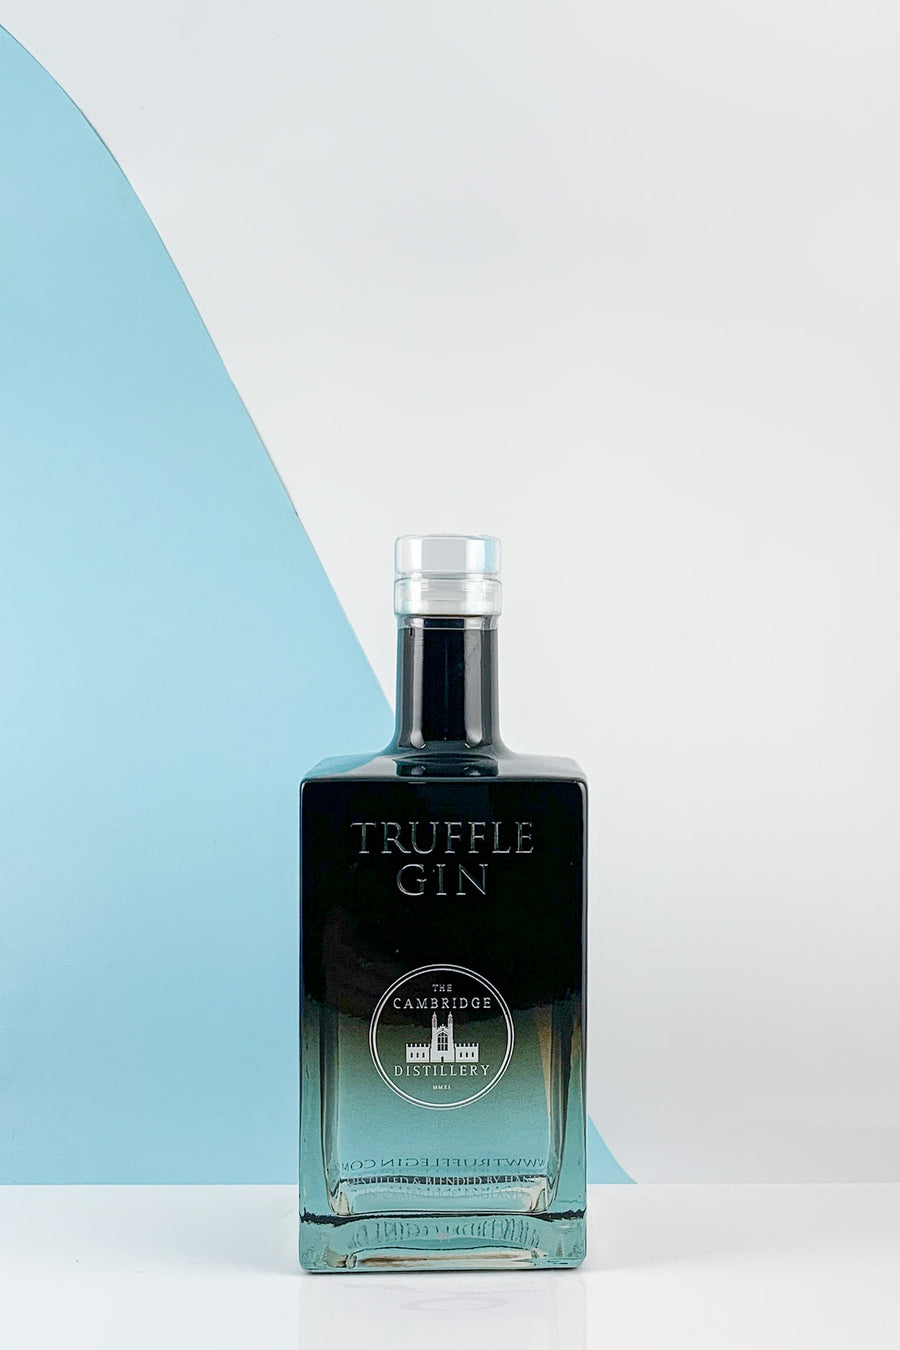 Cambridge Distillery Truffle Gin